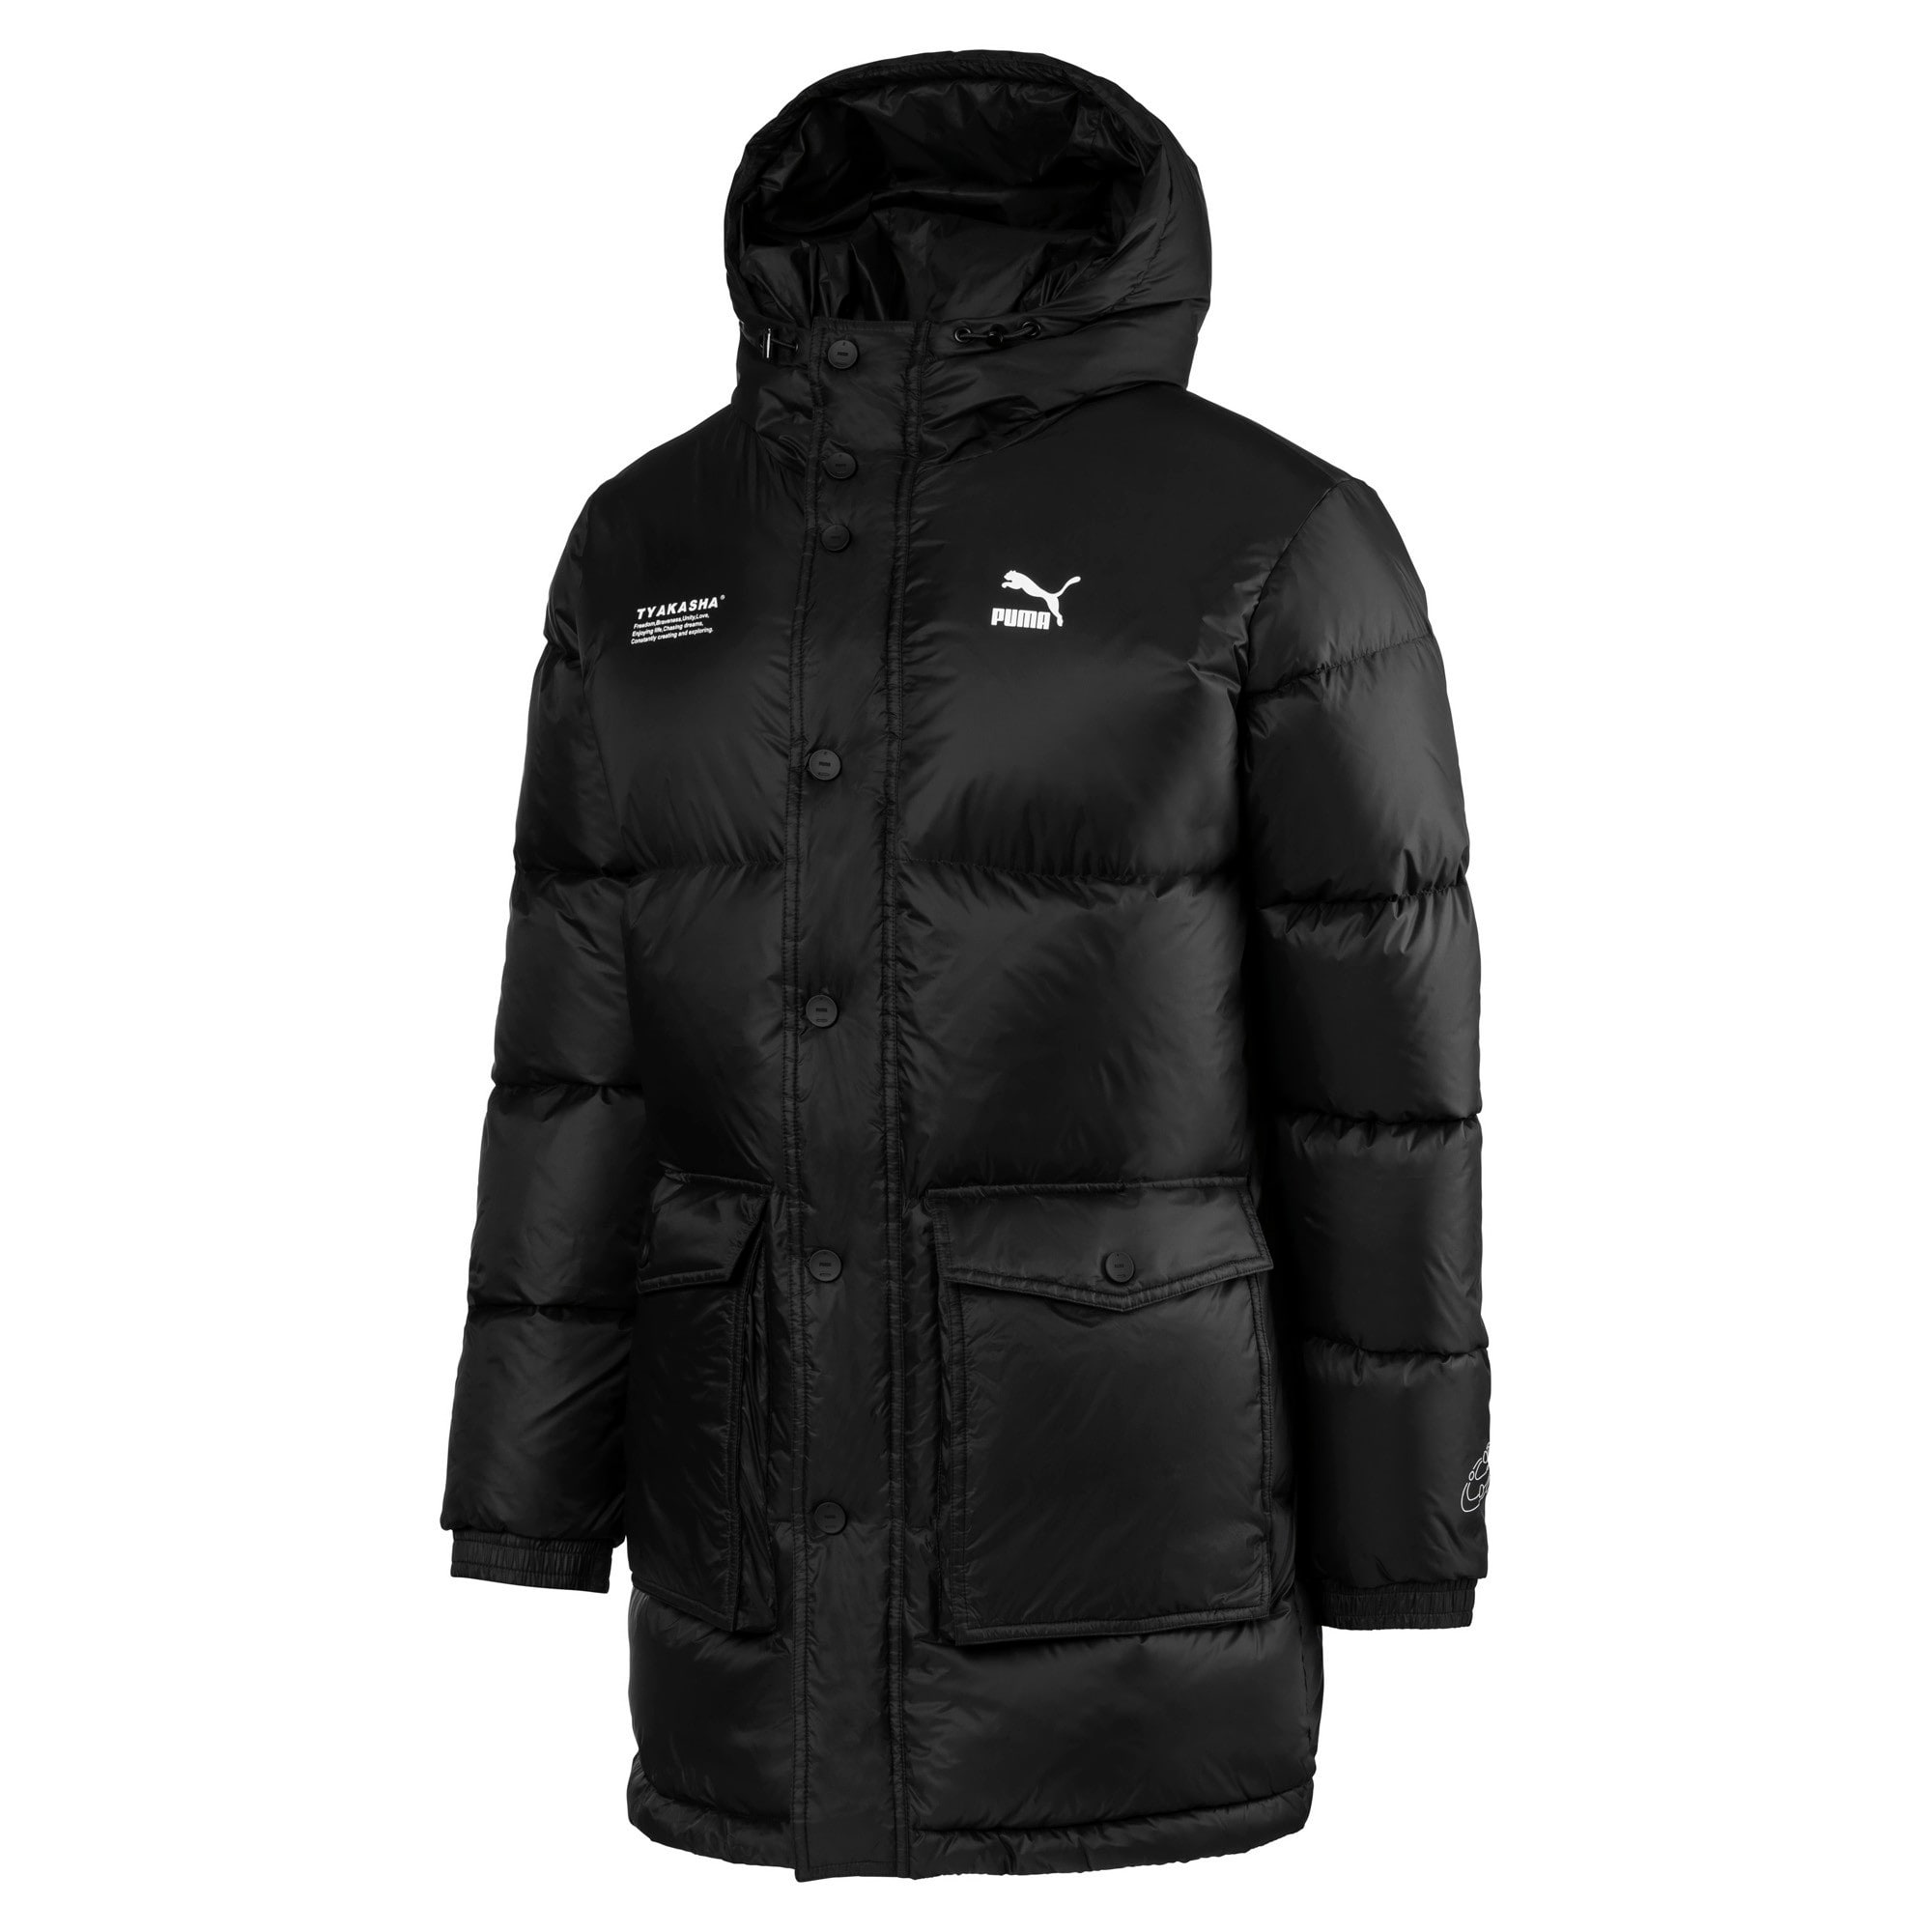 Thumbnail 1 of PUMA x TYAKASHA Woven Down Parka, Puma Black, medium